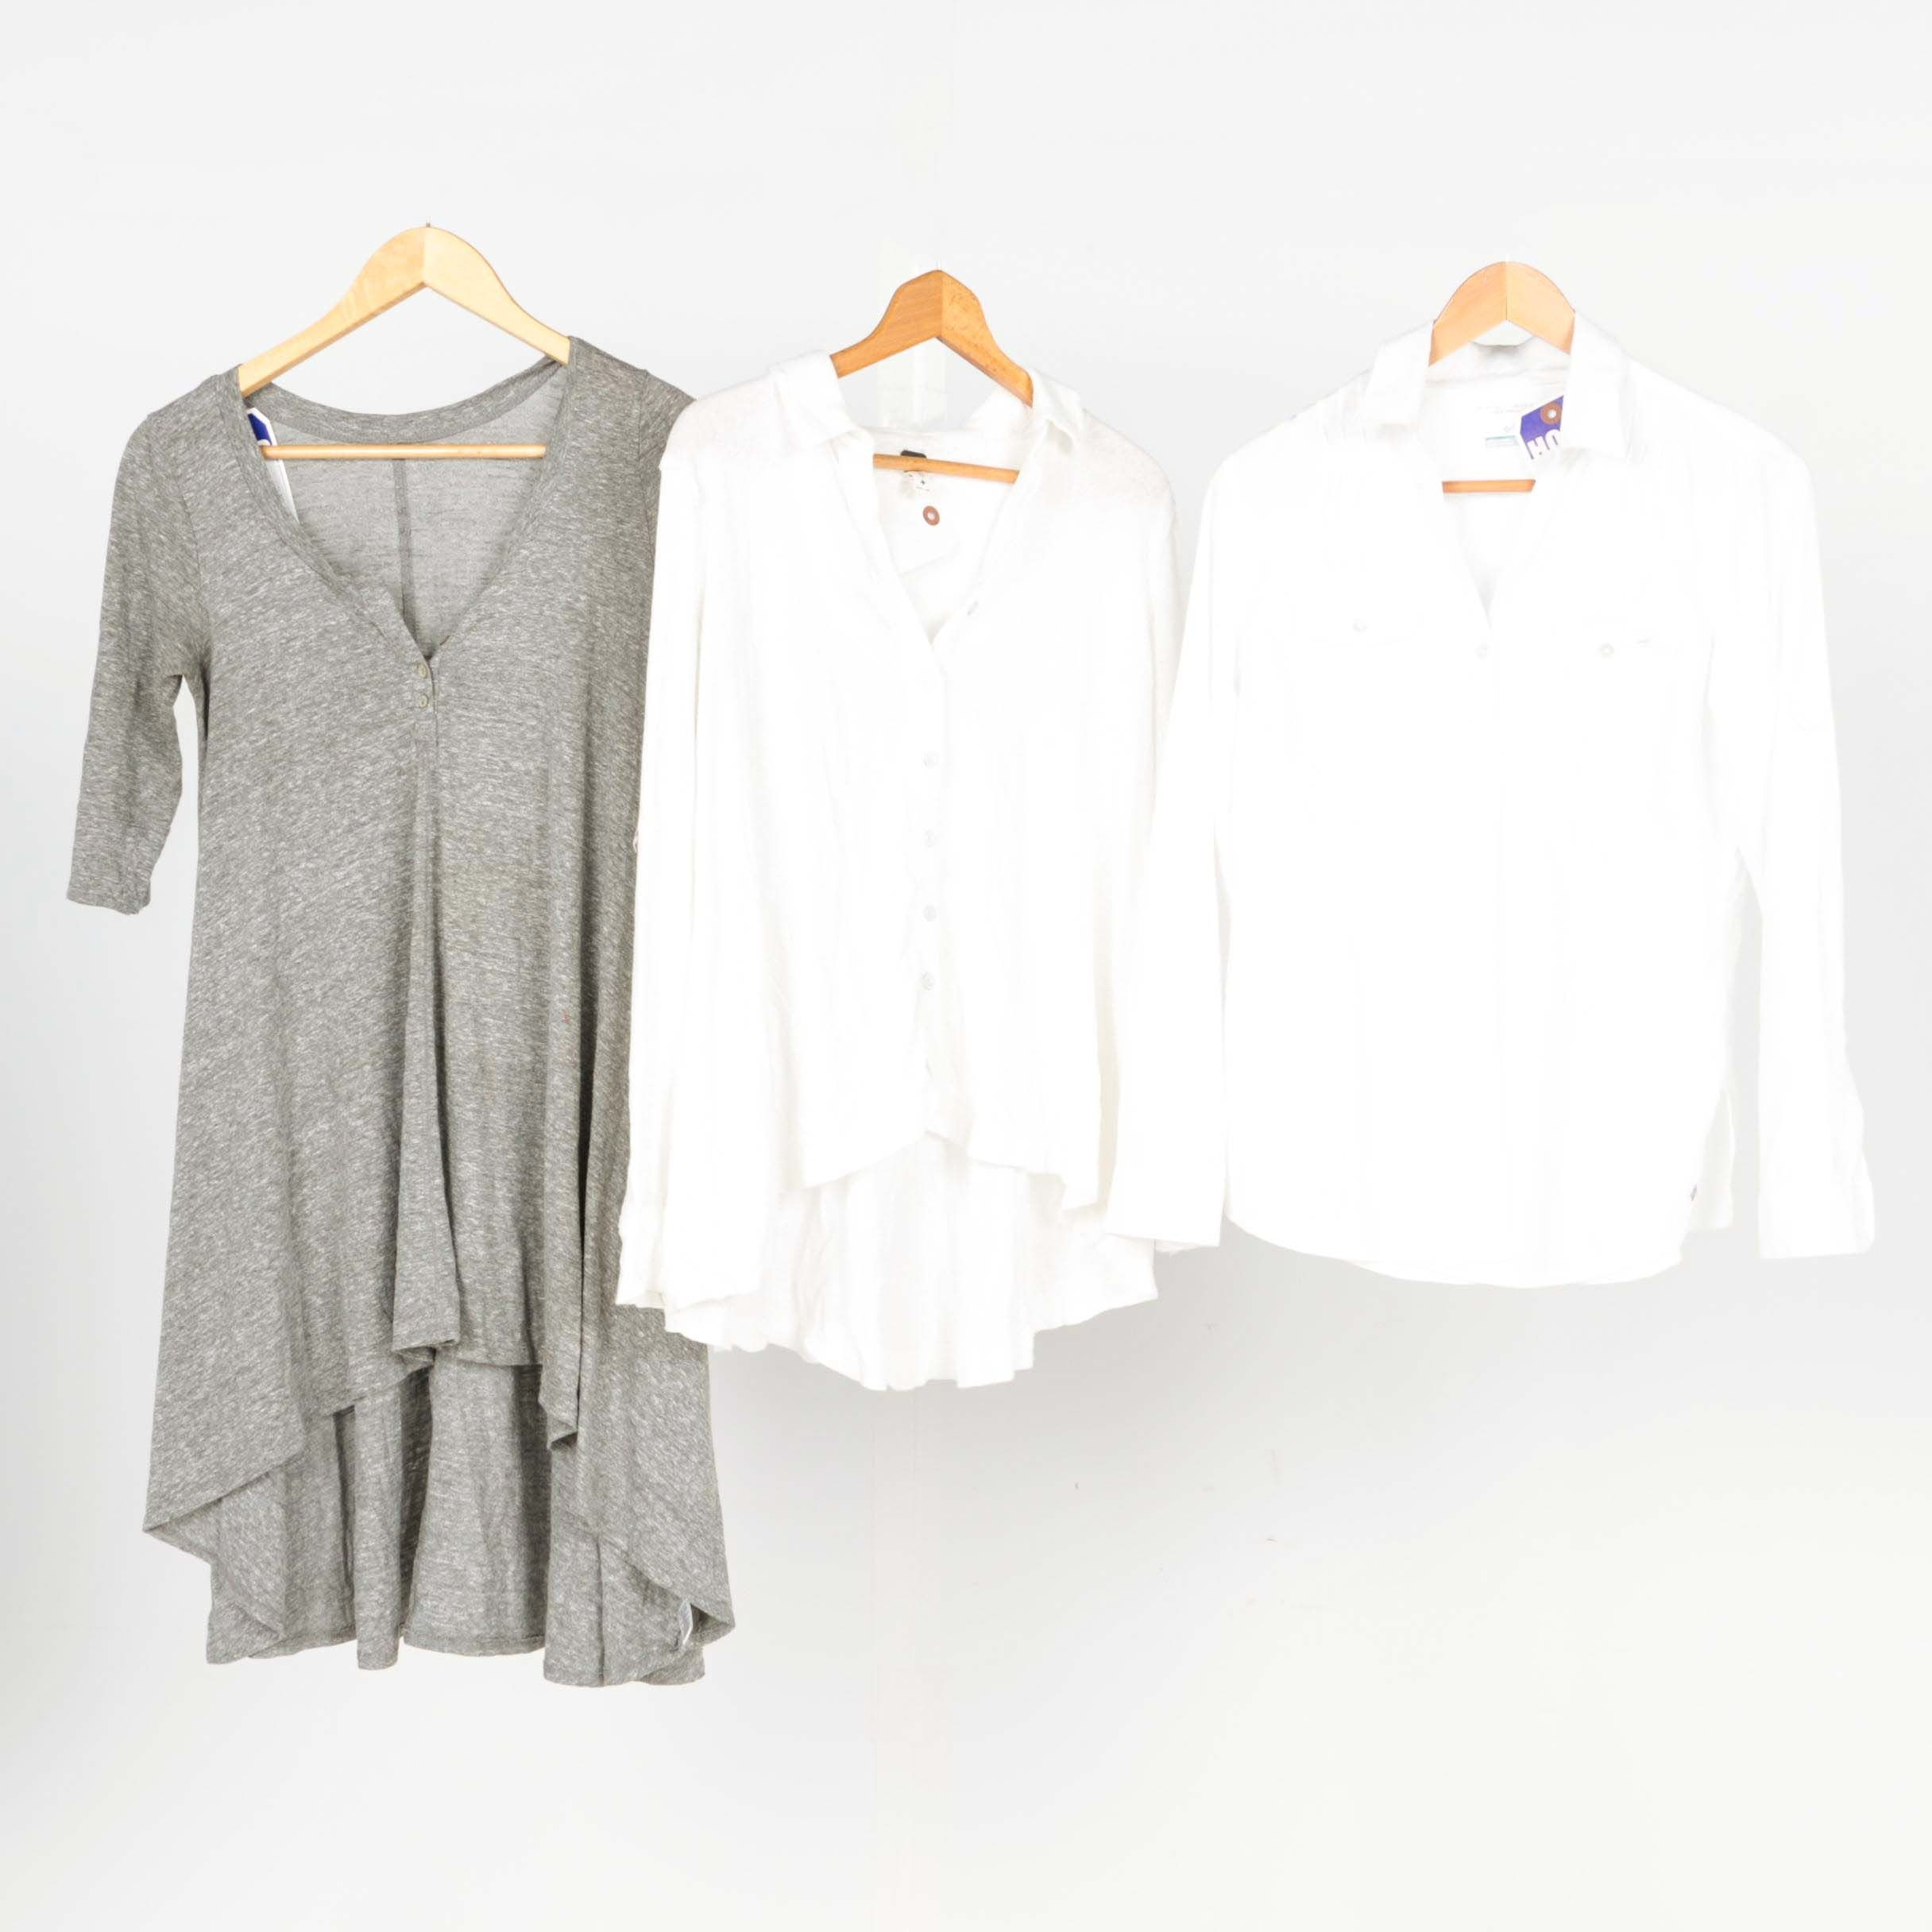 Women's Tops Including We The Free and Columbia